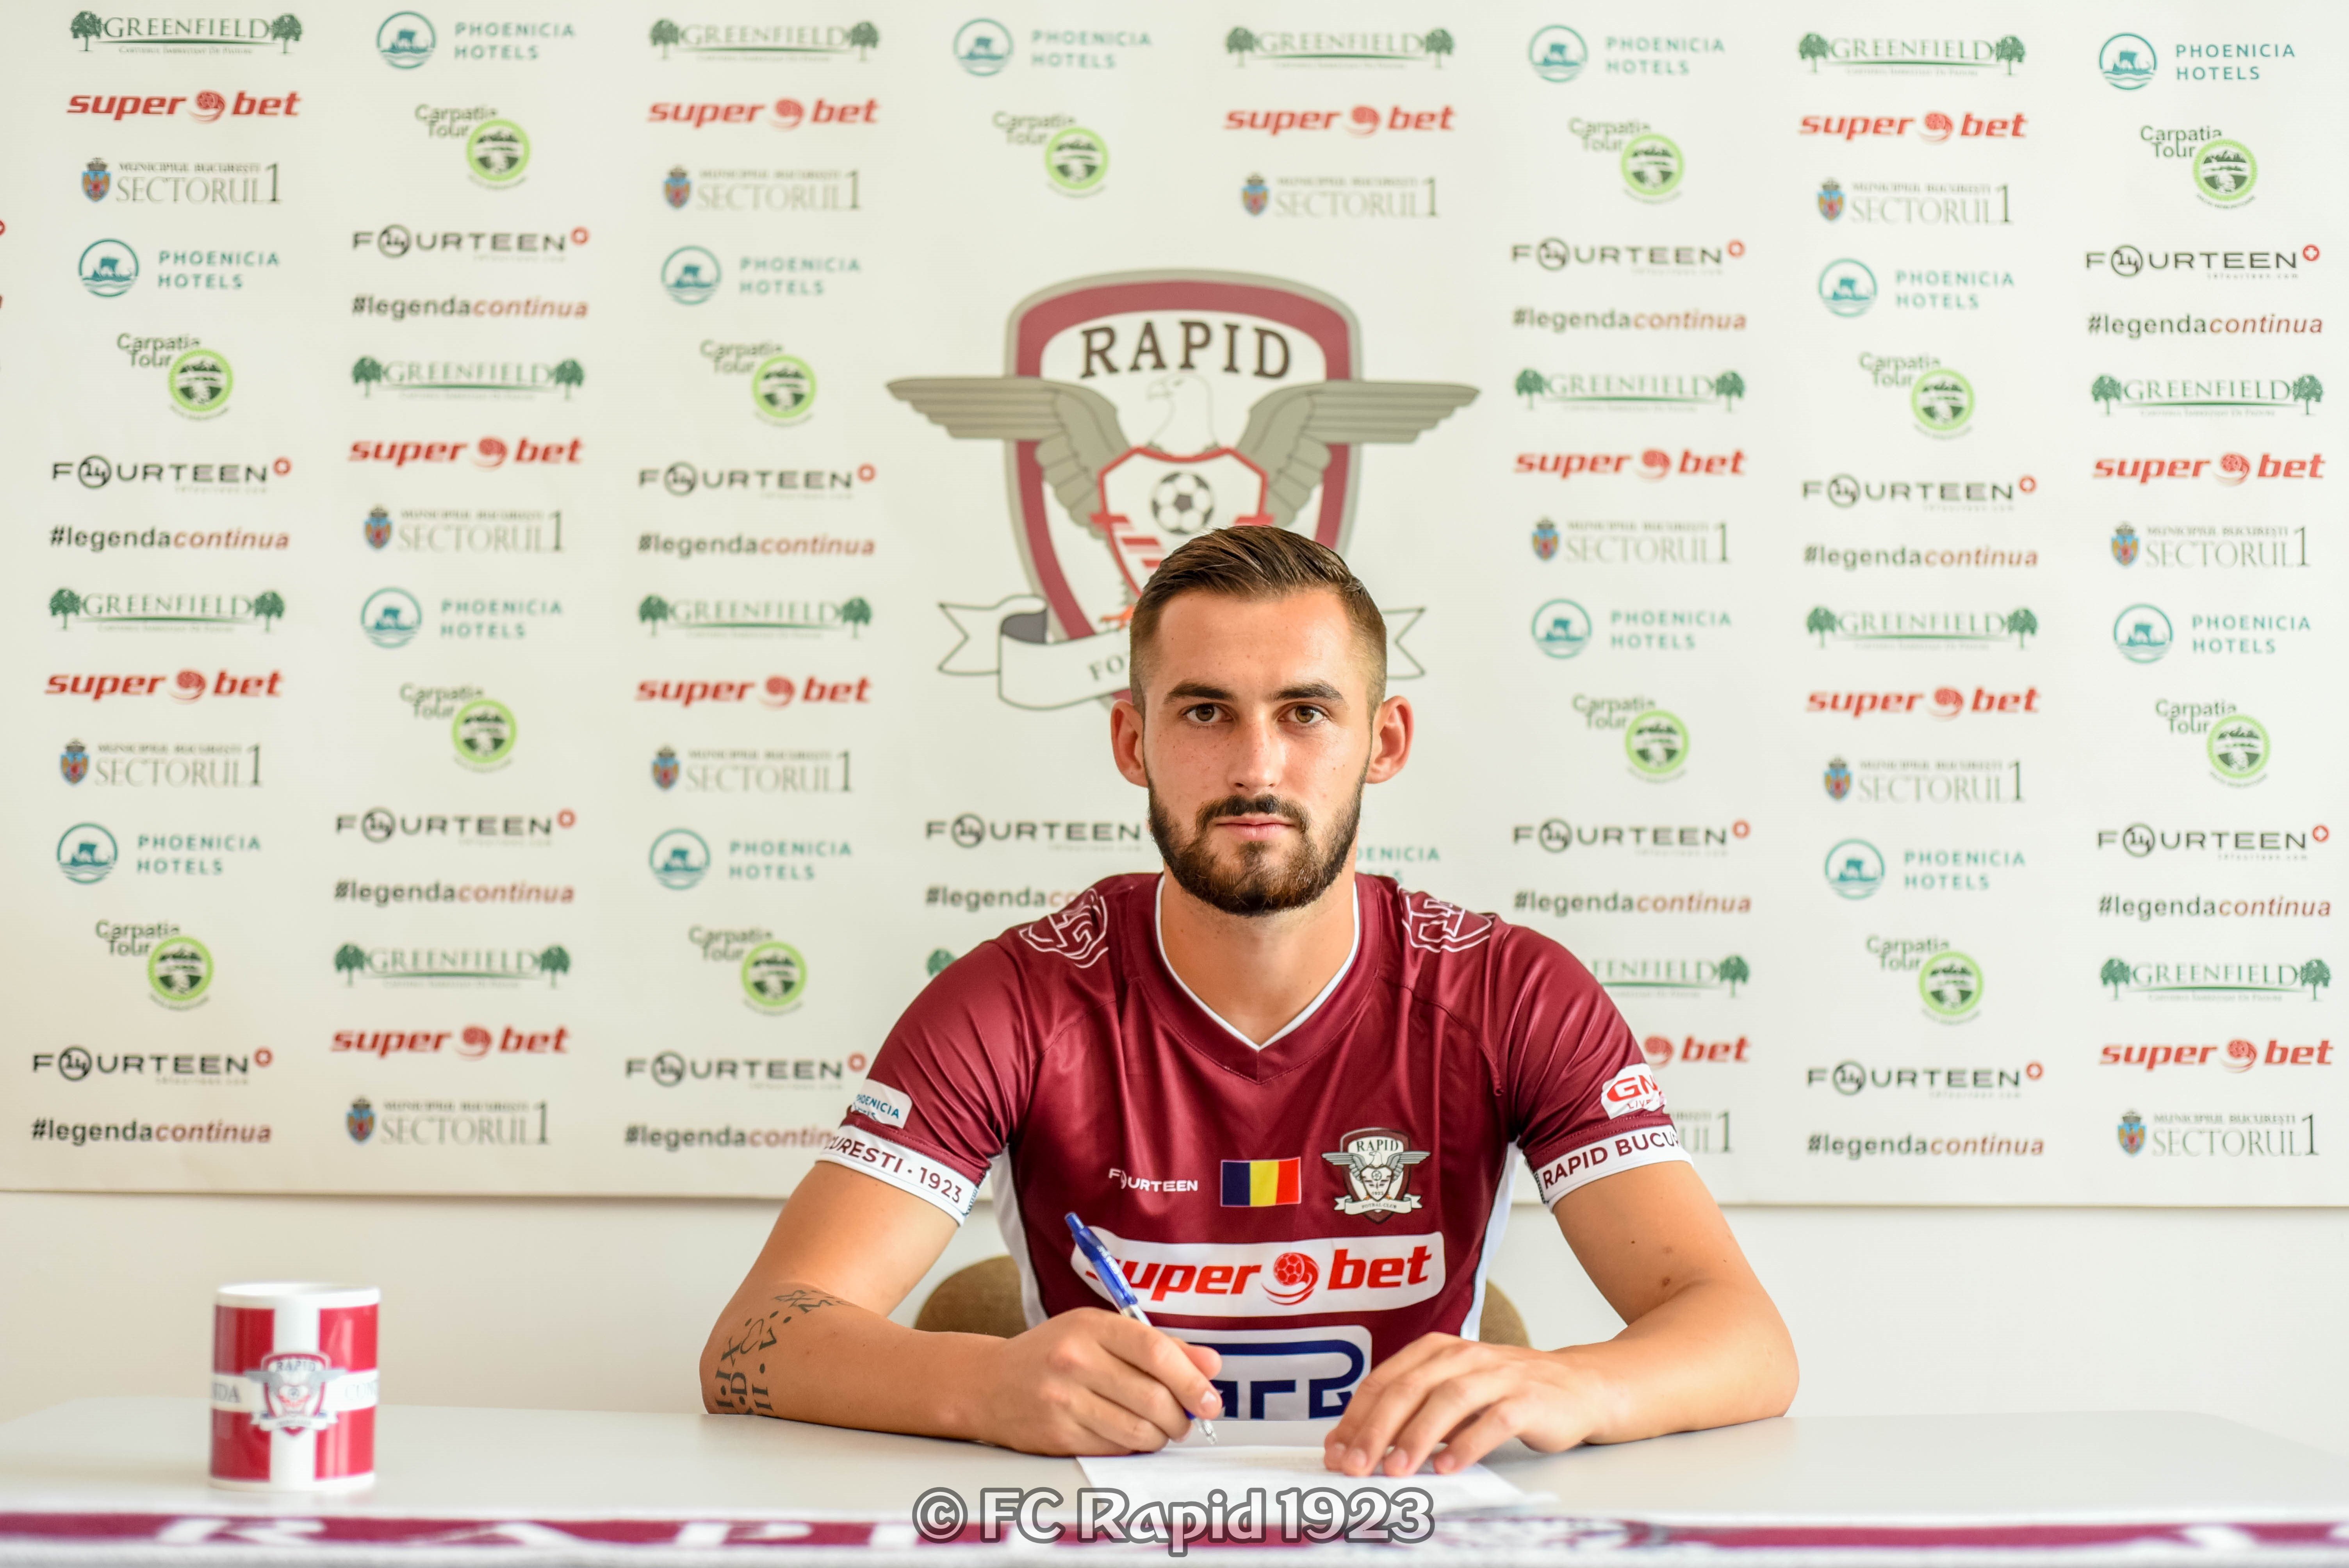 Rapid moved the attacker. Sergiu Jurj, when signing an agreement with rapists